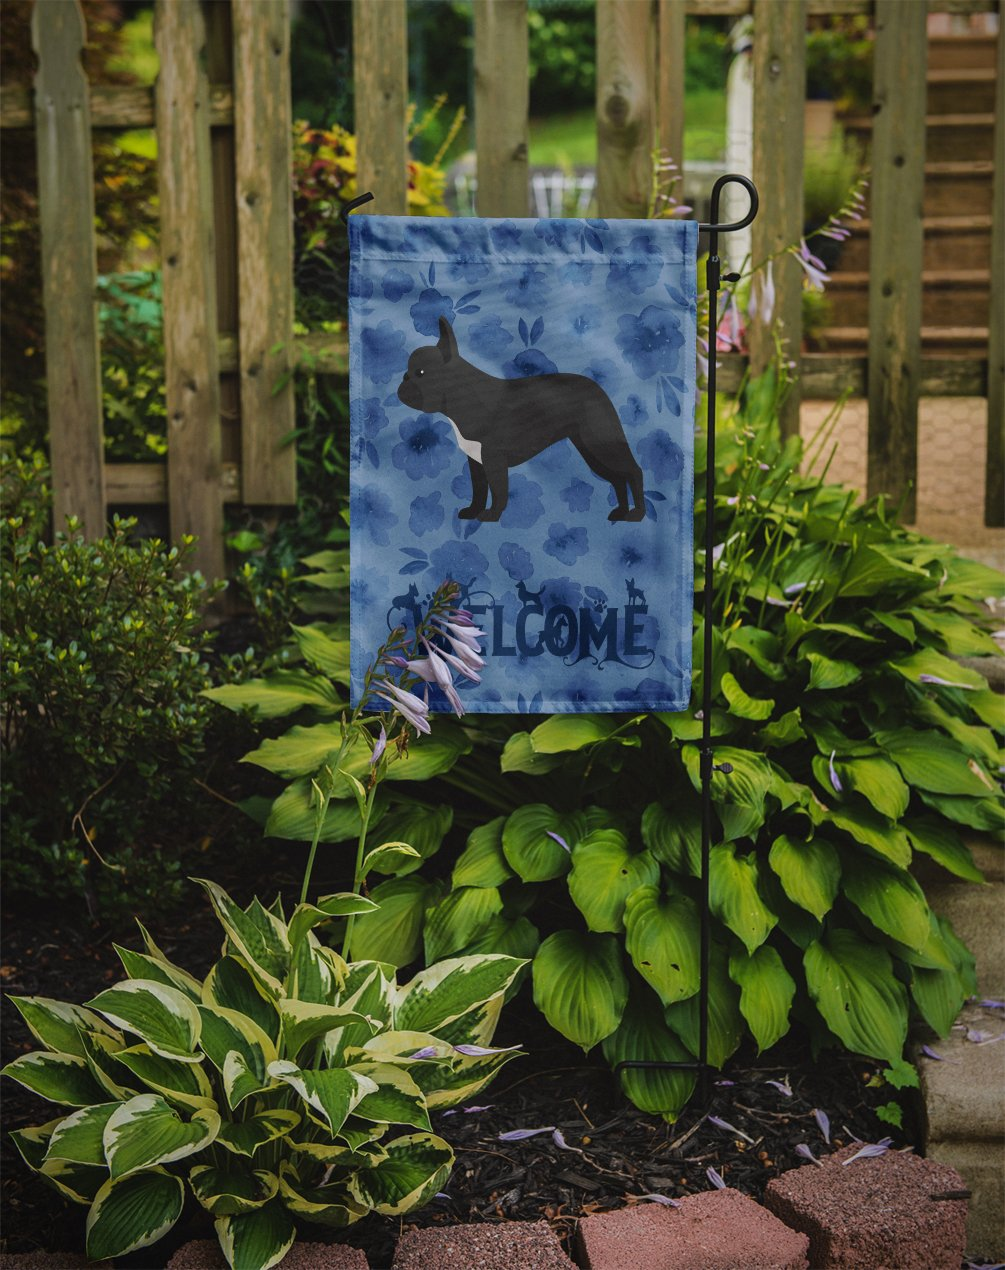 French Bulldog #1 Welcome Flag Garden Size CK5991GF by Caroline's Treasures